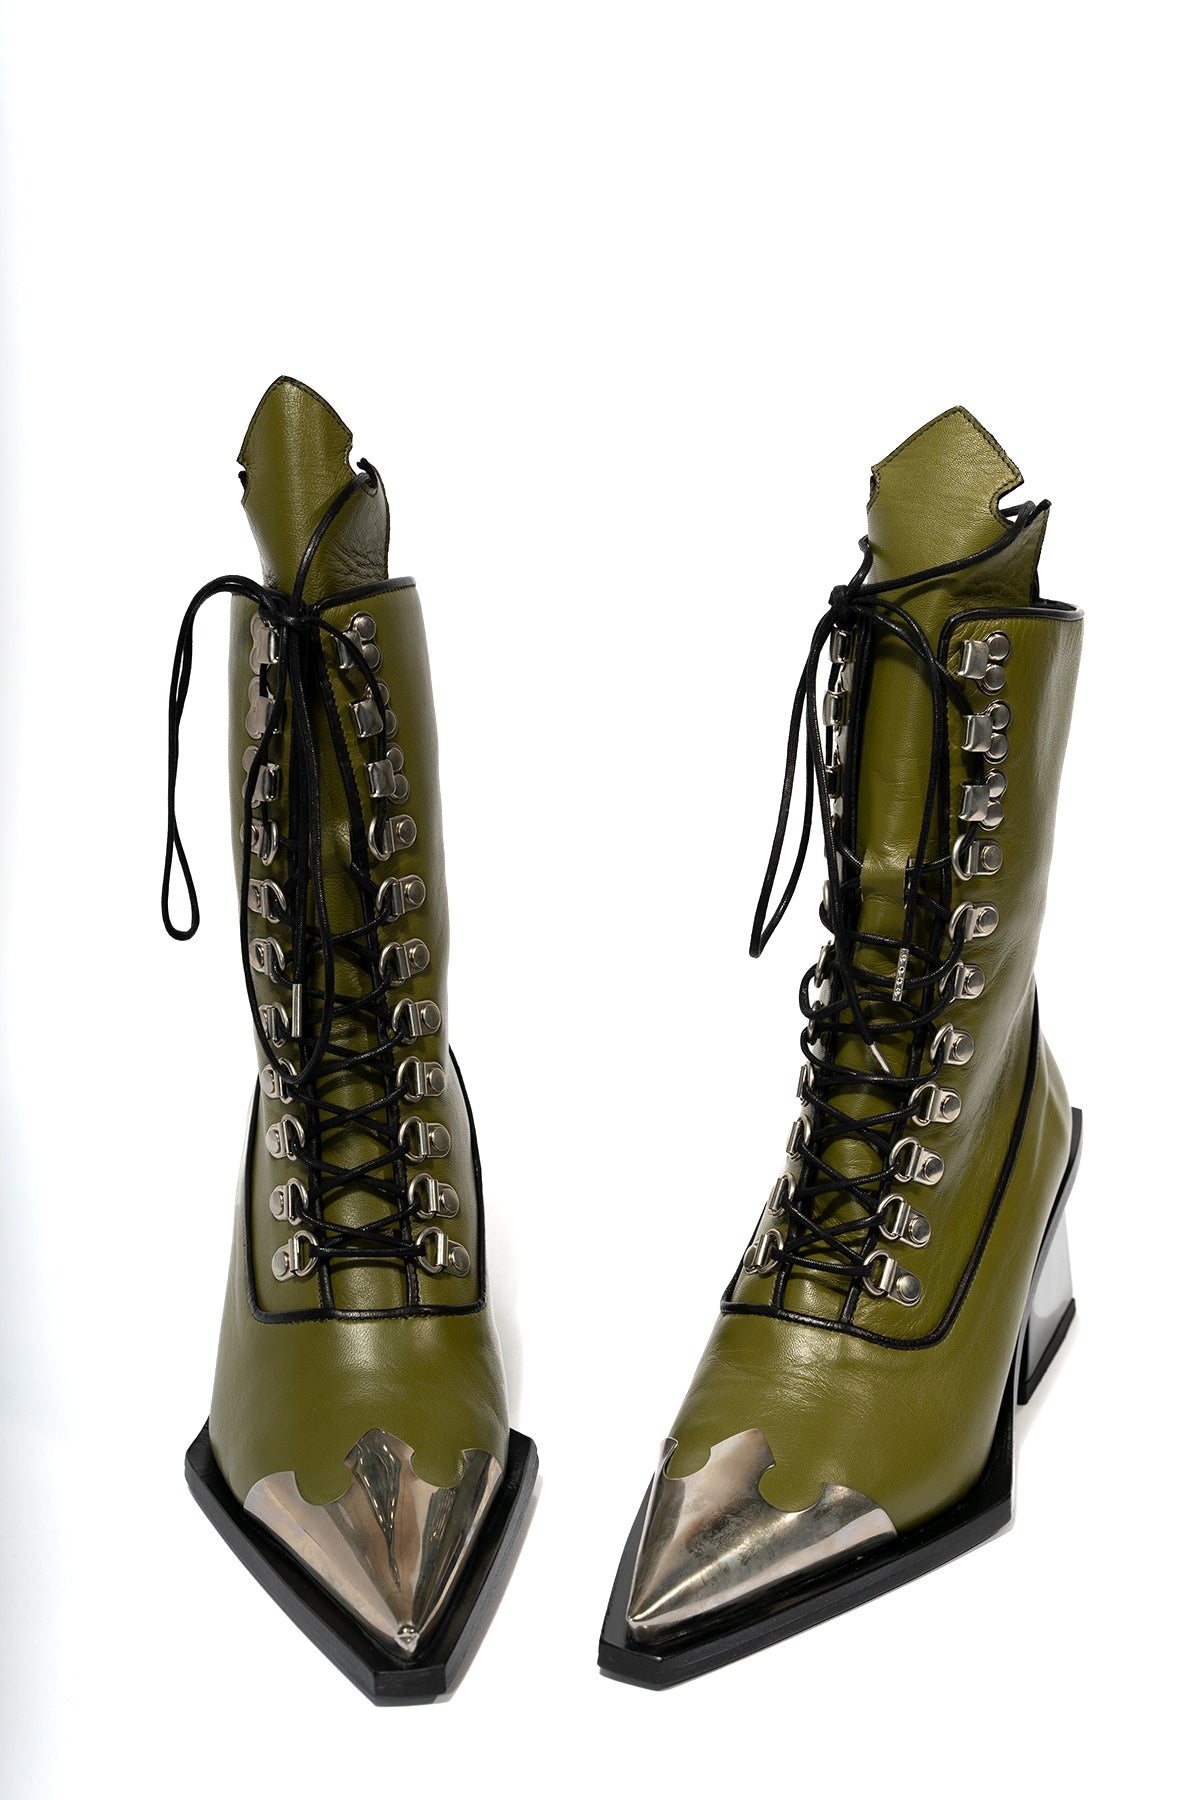 METAL TOE BOOT WITH M'A HEEL marques almeida